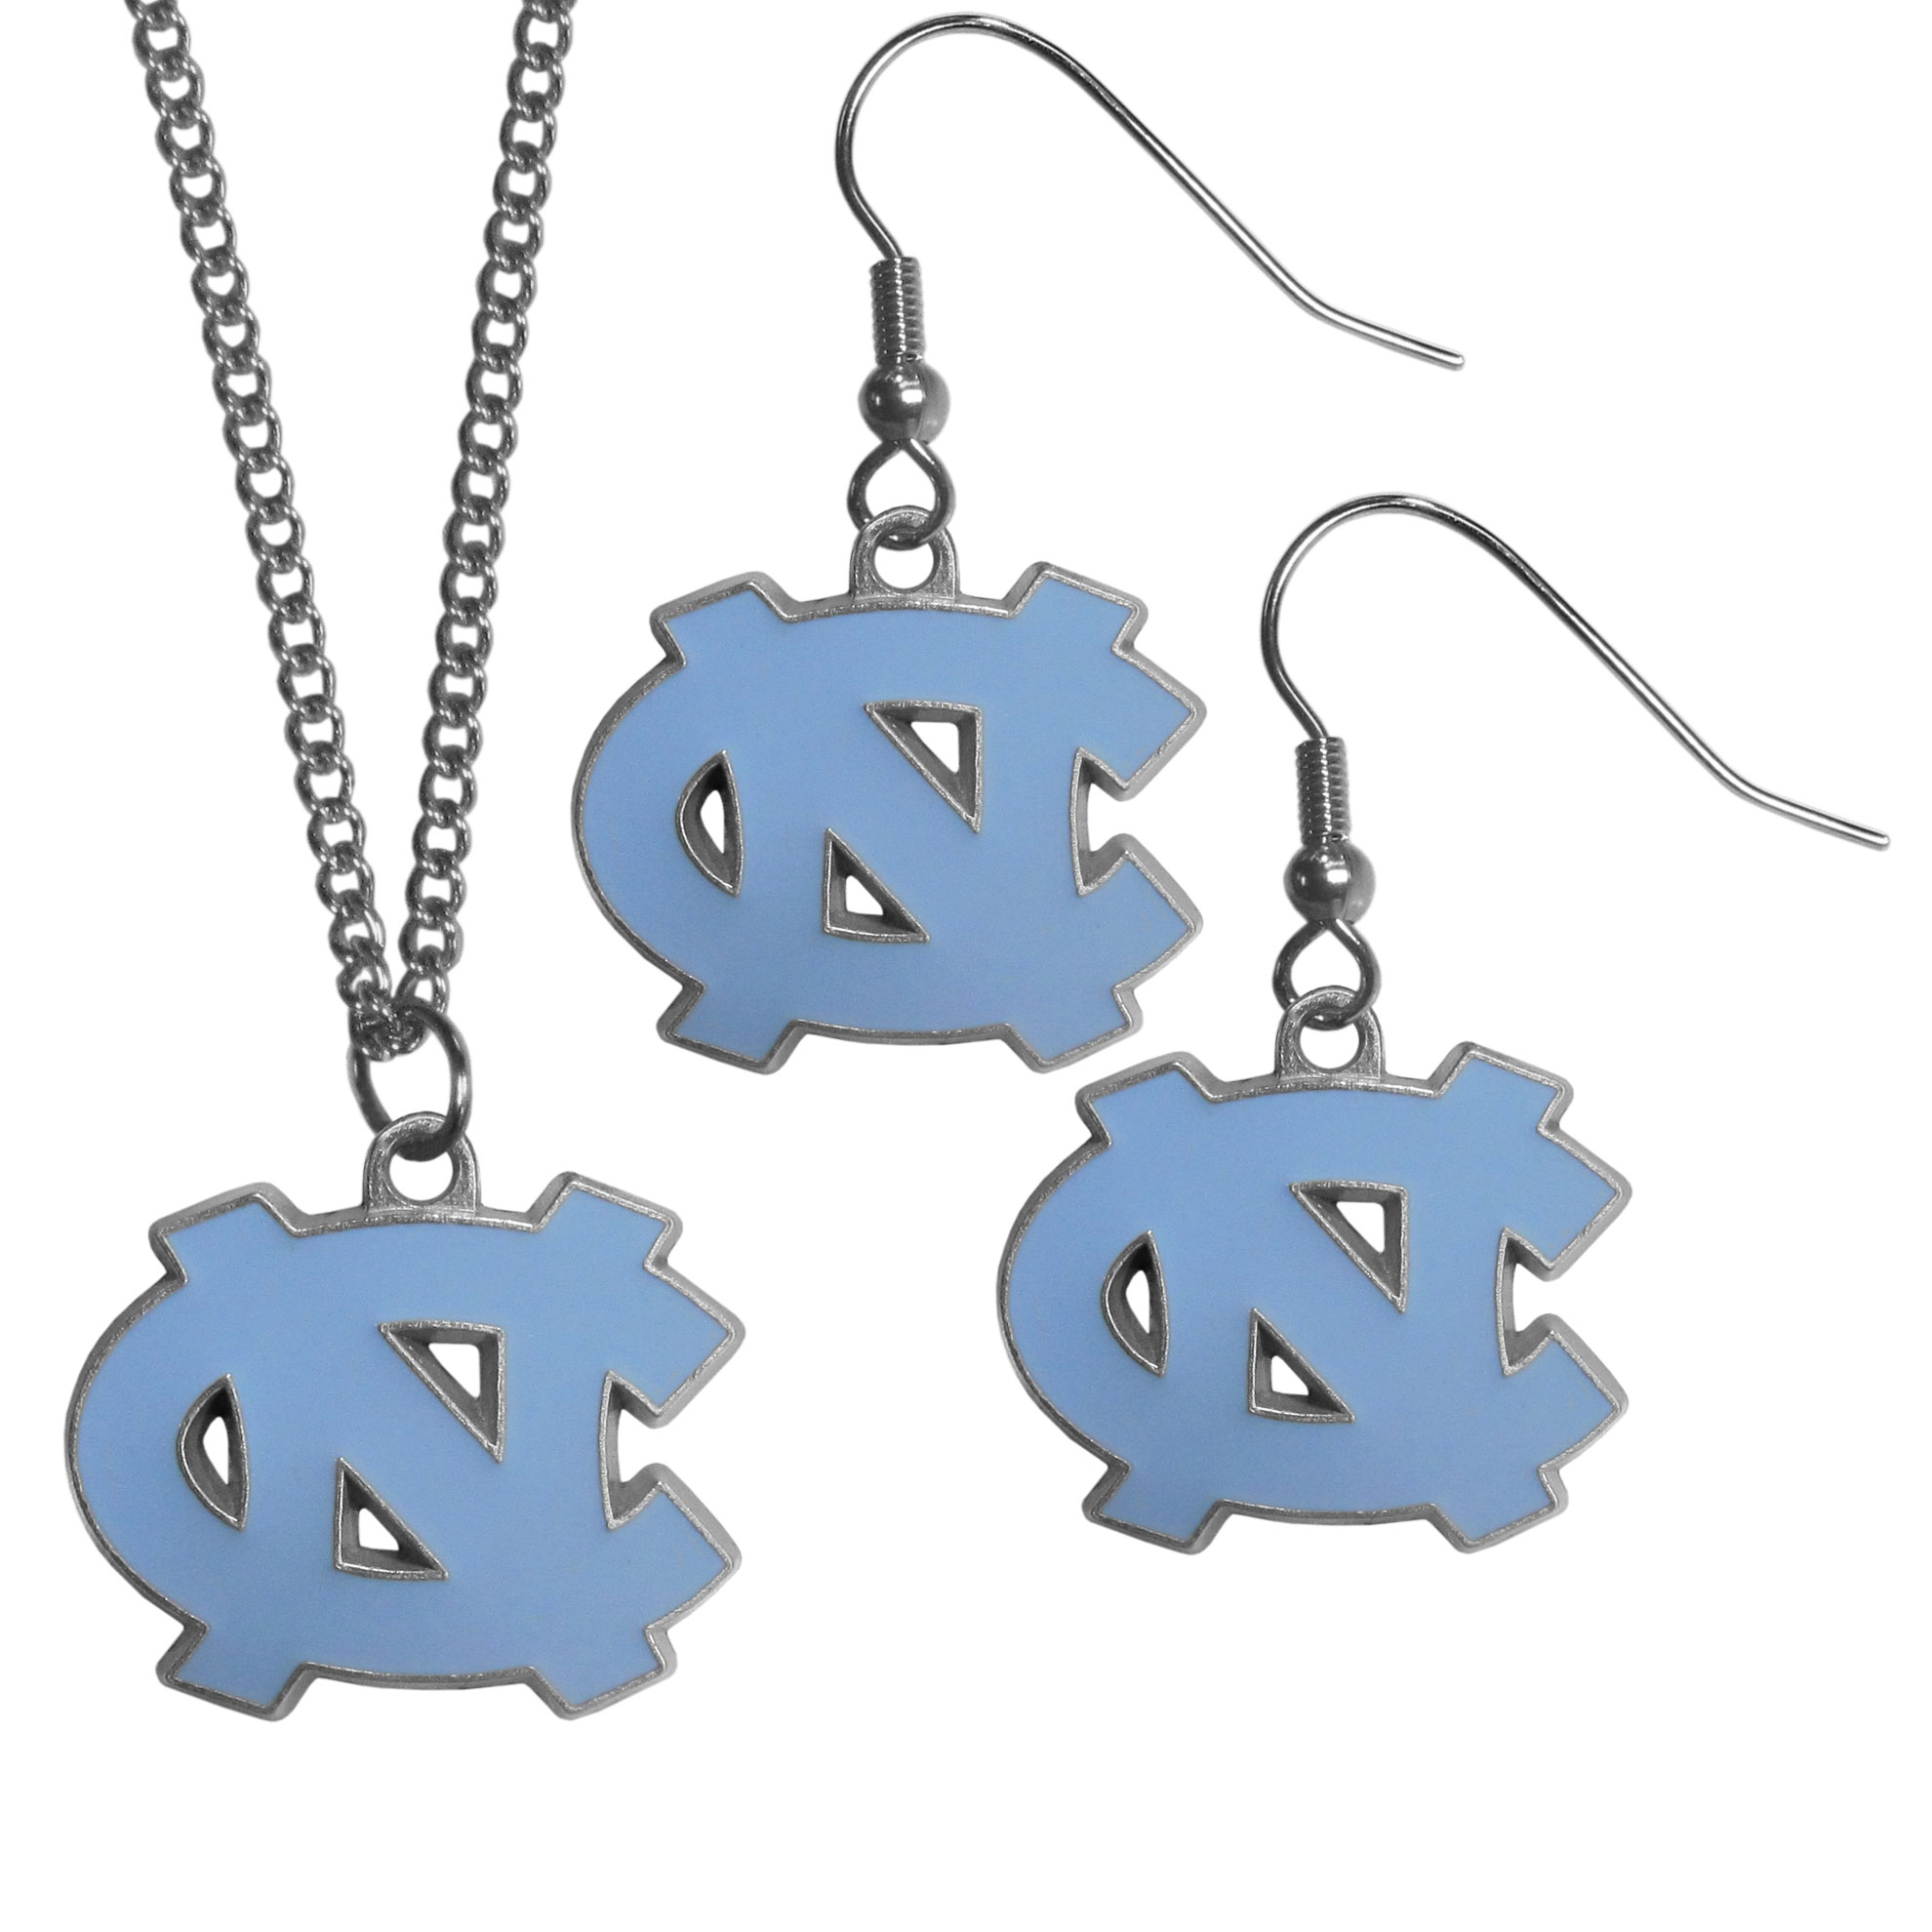 N. Carolina Tar Heels Dangle Earrings and Chain Necklace Set - This classic jewelry set contains are most popular N. Carolina Tar Heels dangle earrings and 22 inch chain necklace. The trendy, dangle earrings are lightweight and feature a fully cast metal team charm with enameled team colors. The matching necklace completes this fashion forward combo and is a spirited set that is perfect for game day but nice enough for everyday.